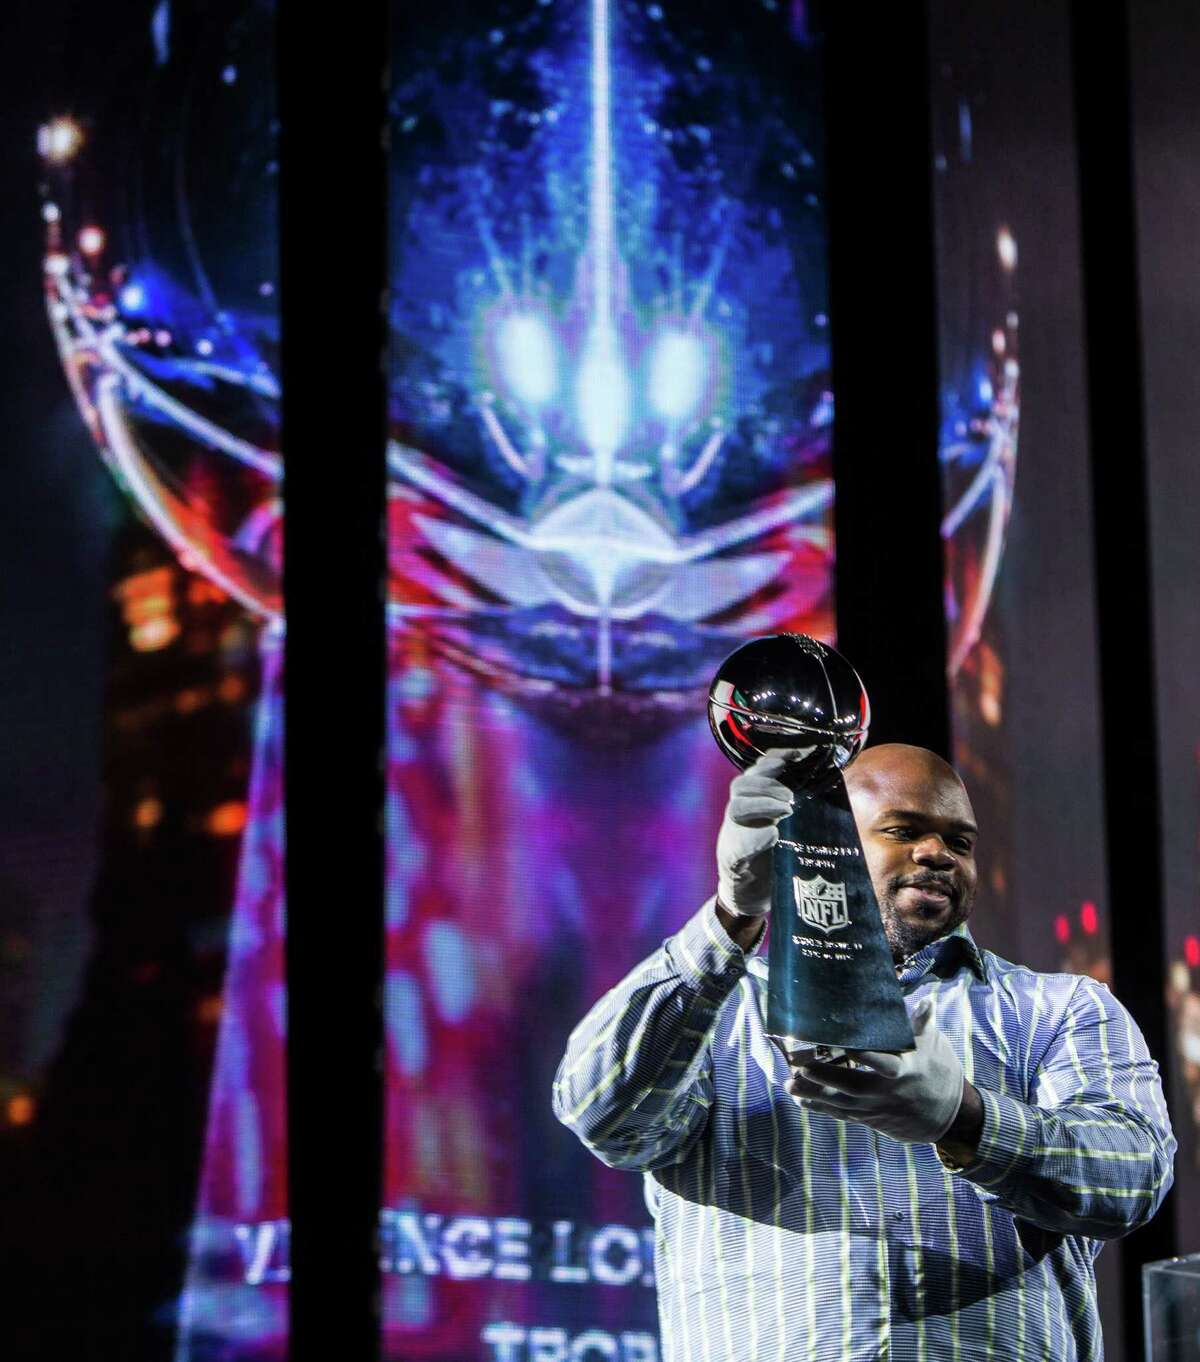 Houston Texans nose tackle Vince Wilfork raises the Vince Lombardi Trophy as he delivers it to the George R. Brown Convention Center during Super Bowl LI activities at the NFL Experience on Saturday, Jan. 28, 2017, in Houston.